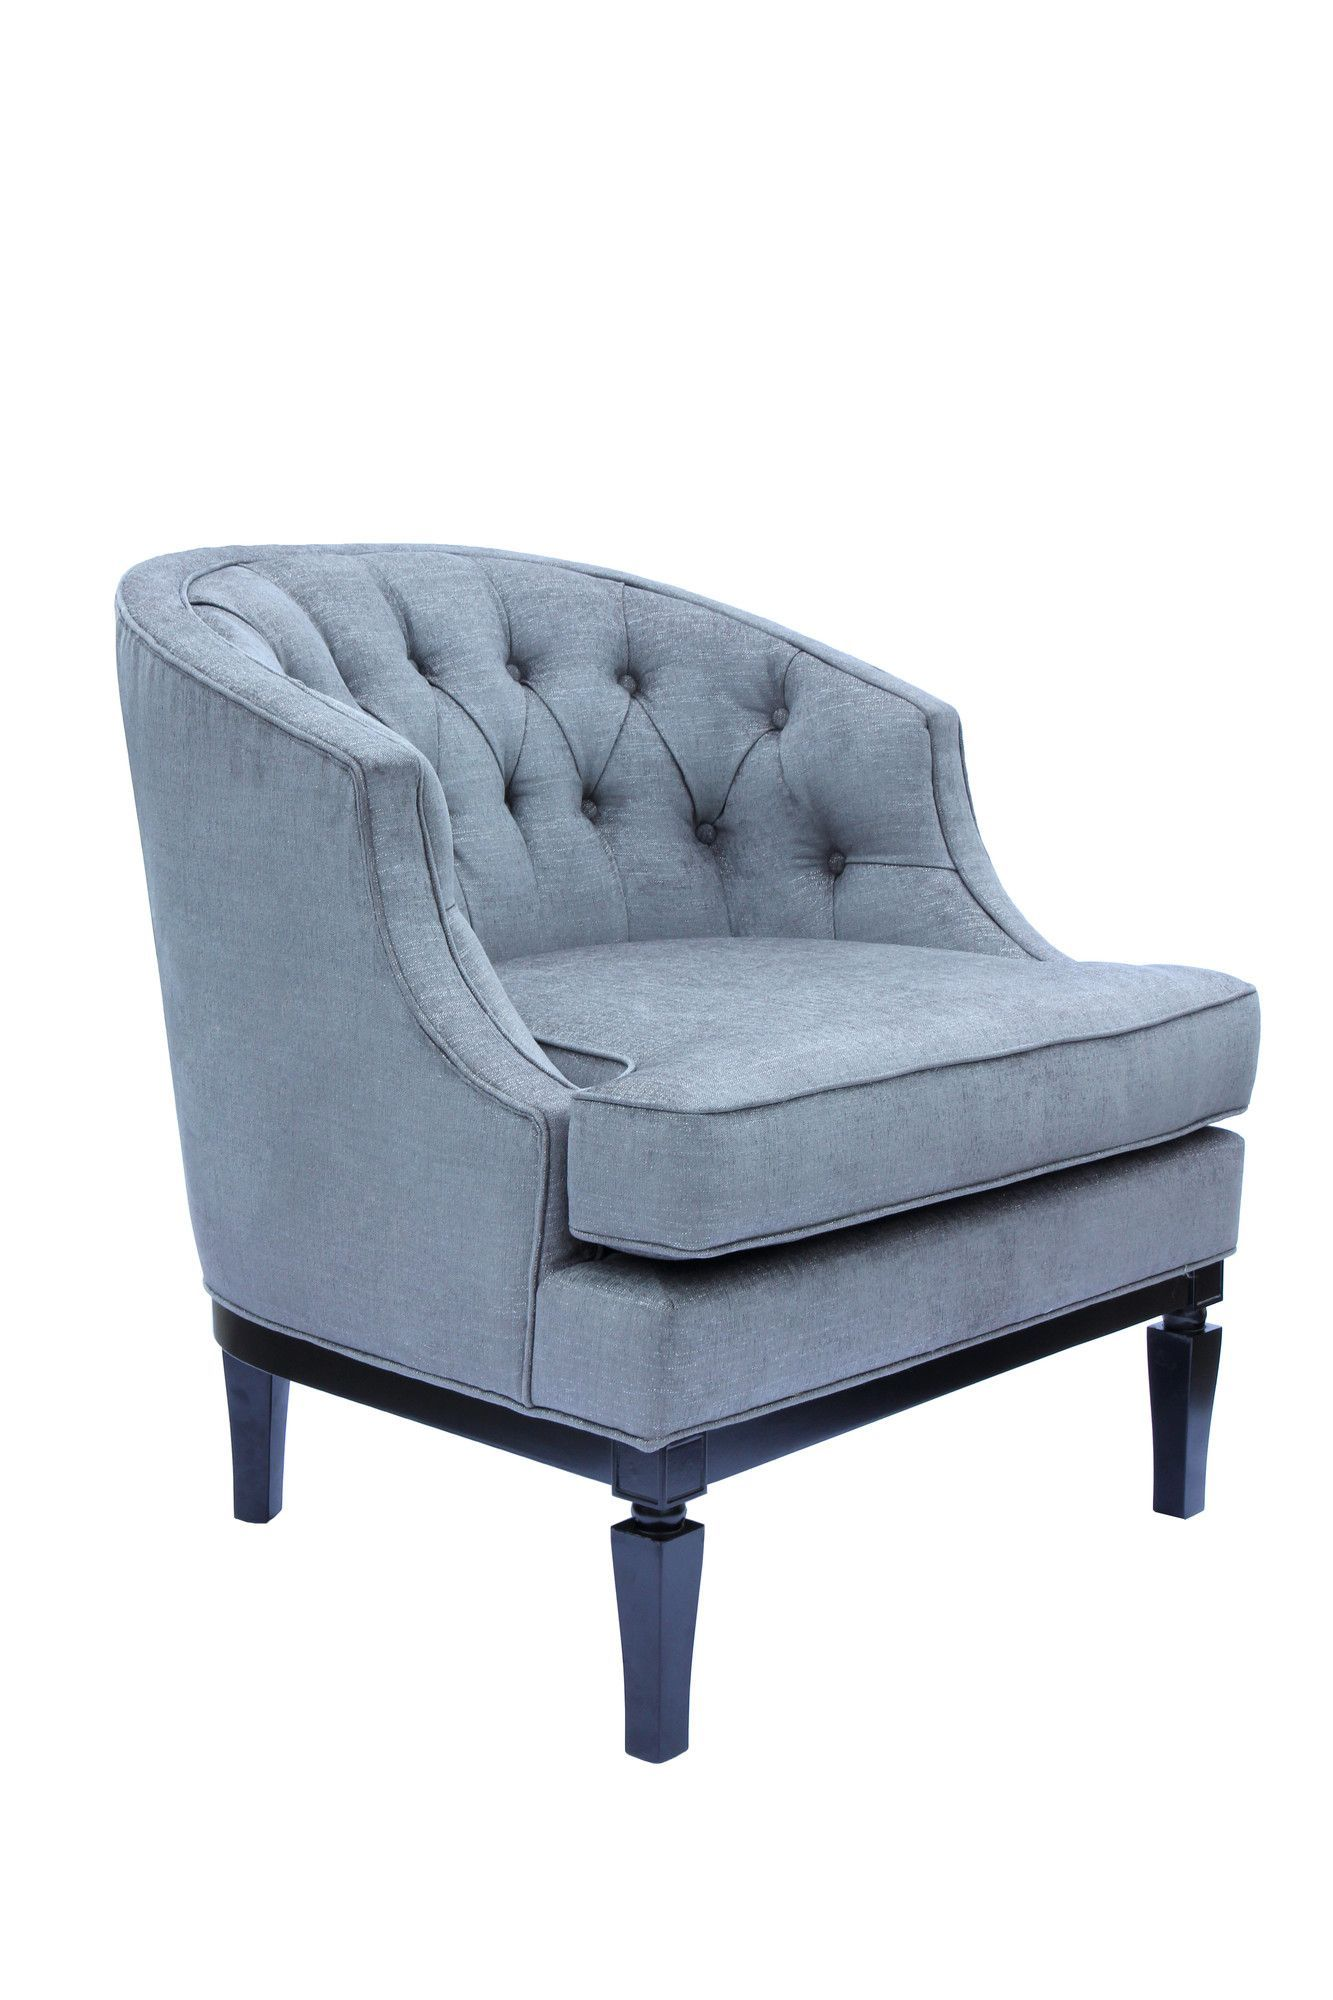 Hd Couture Ashley Club Chair Wayfair Fabric Accent Chair Accent Chairs Chair